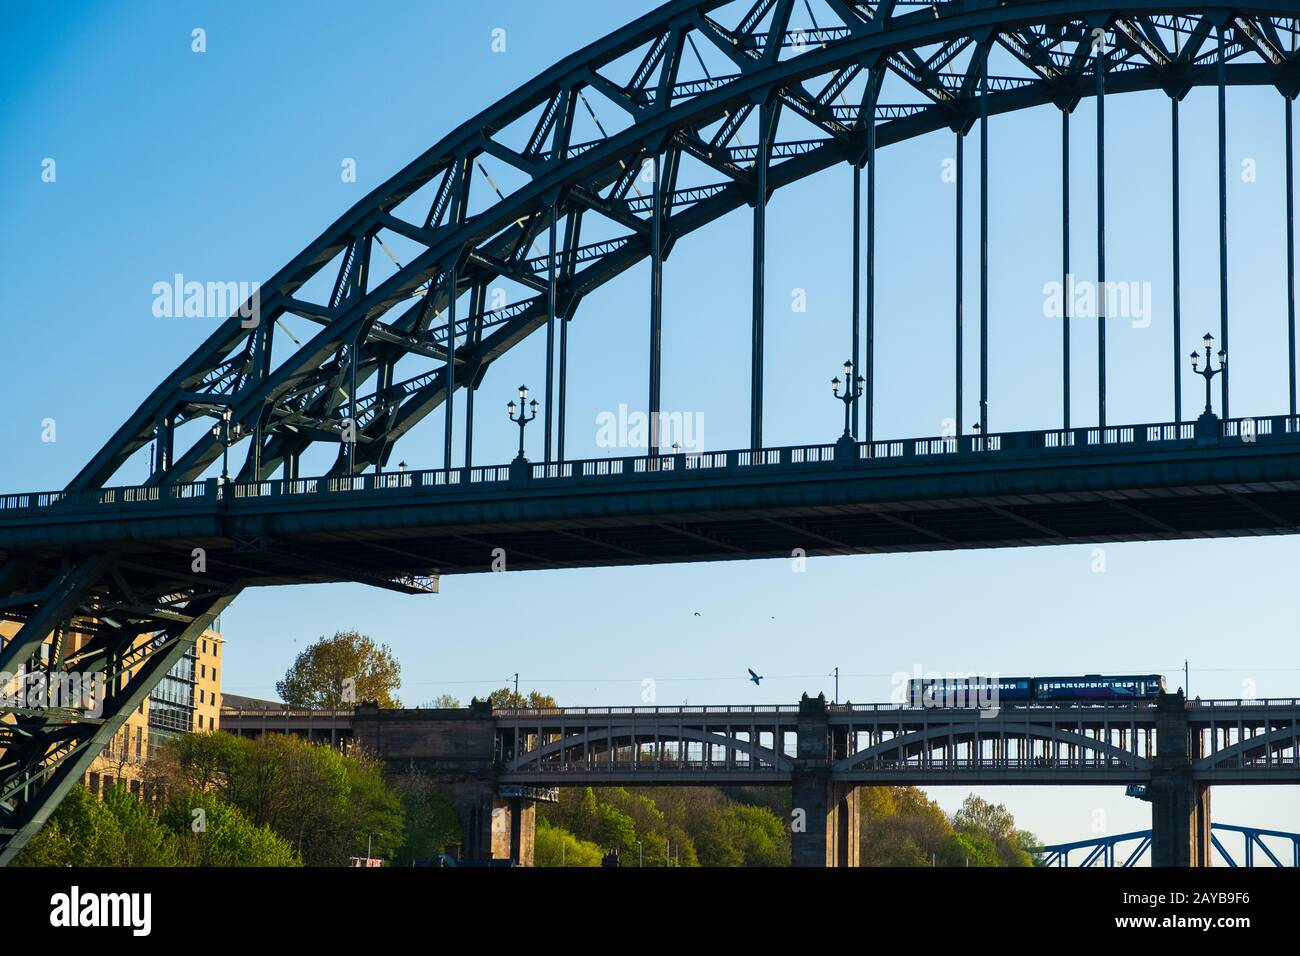 View of sections of  Tyne Bridge and High Level Bridge in the distance in Newcastle upon tyne, England Stock Photo